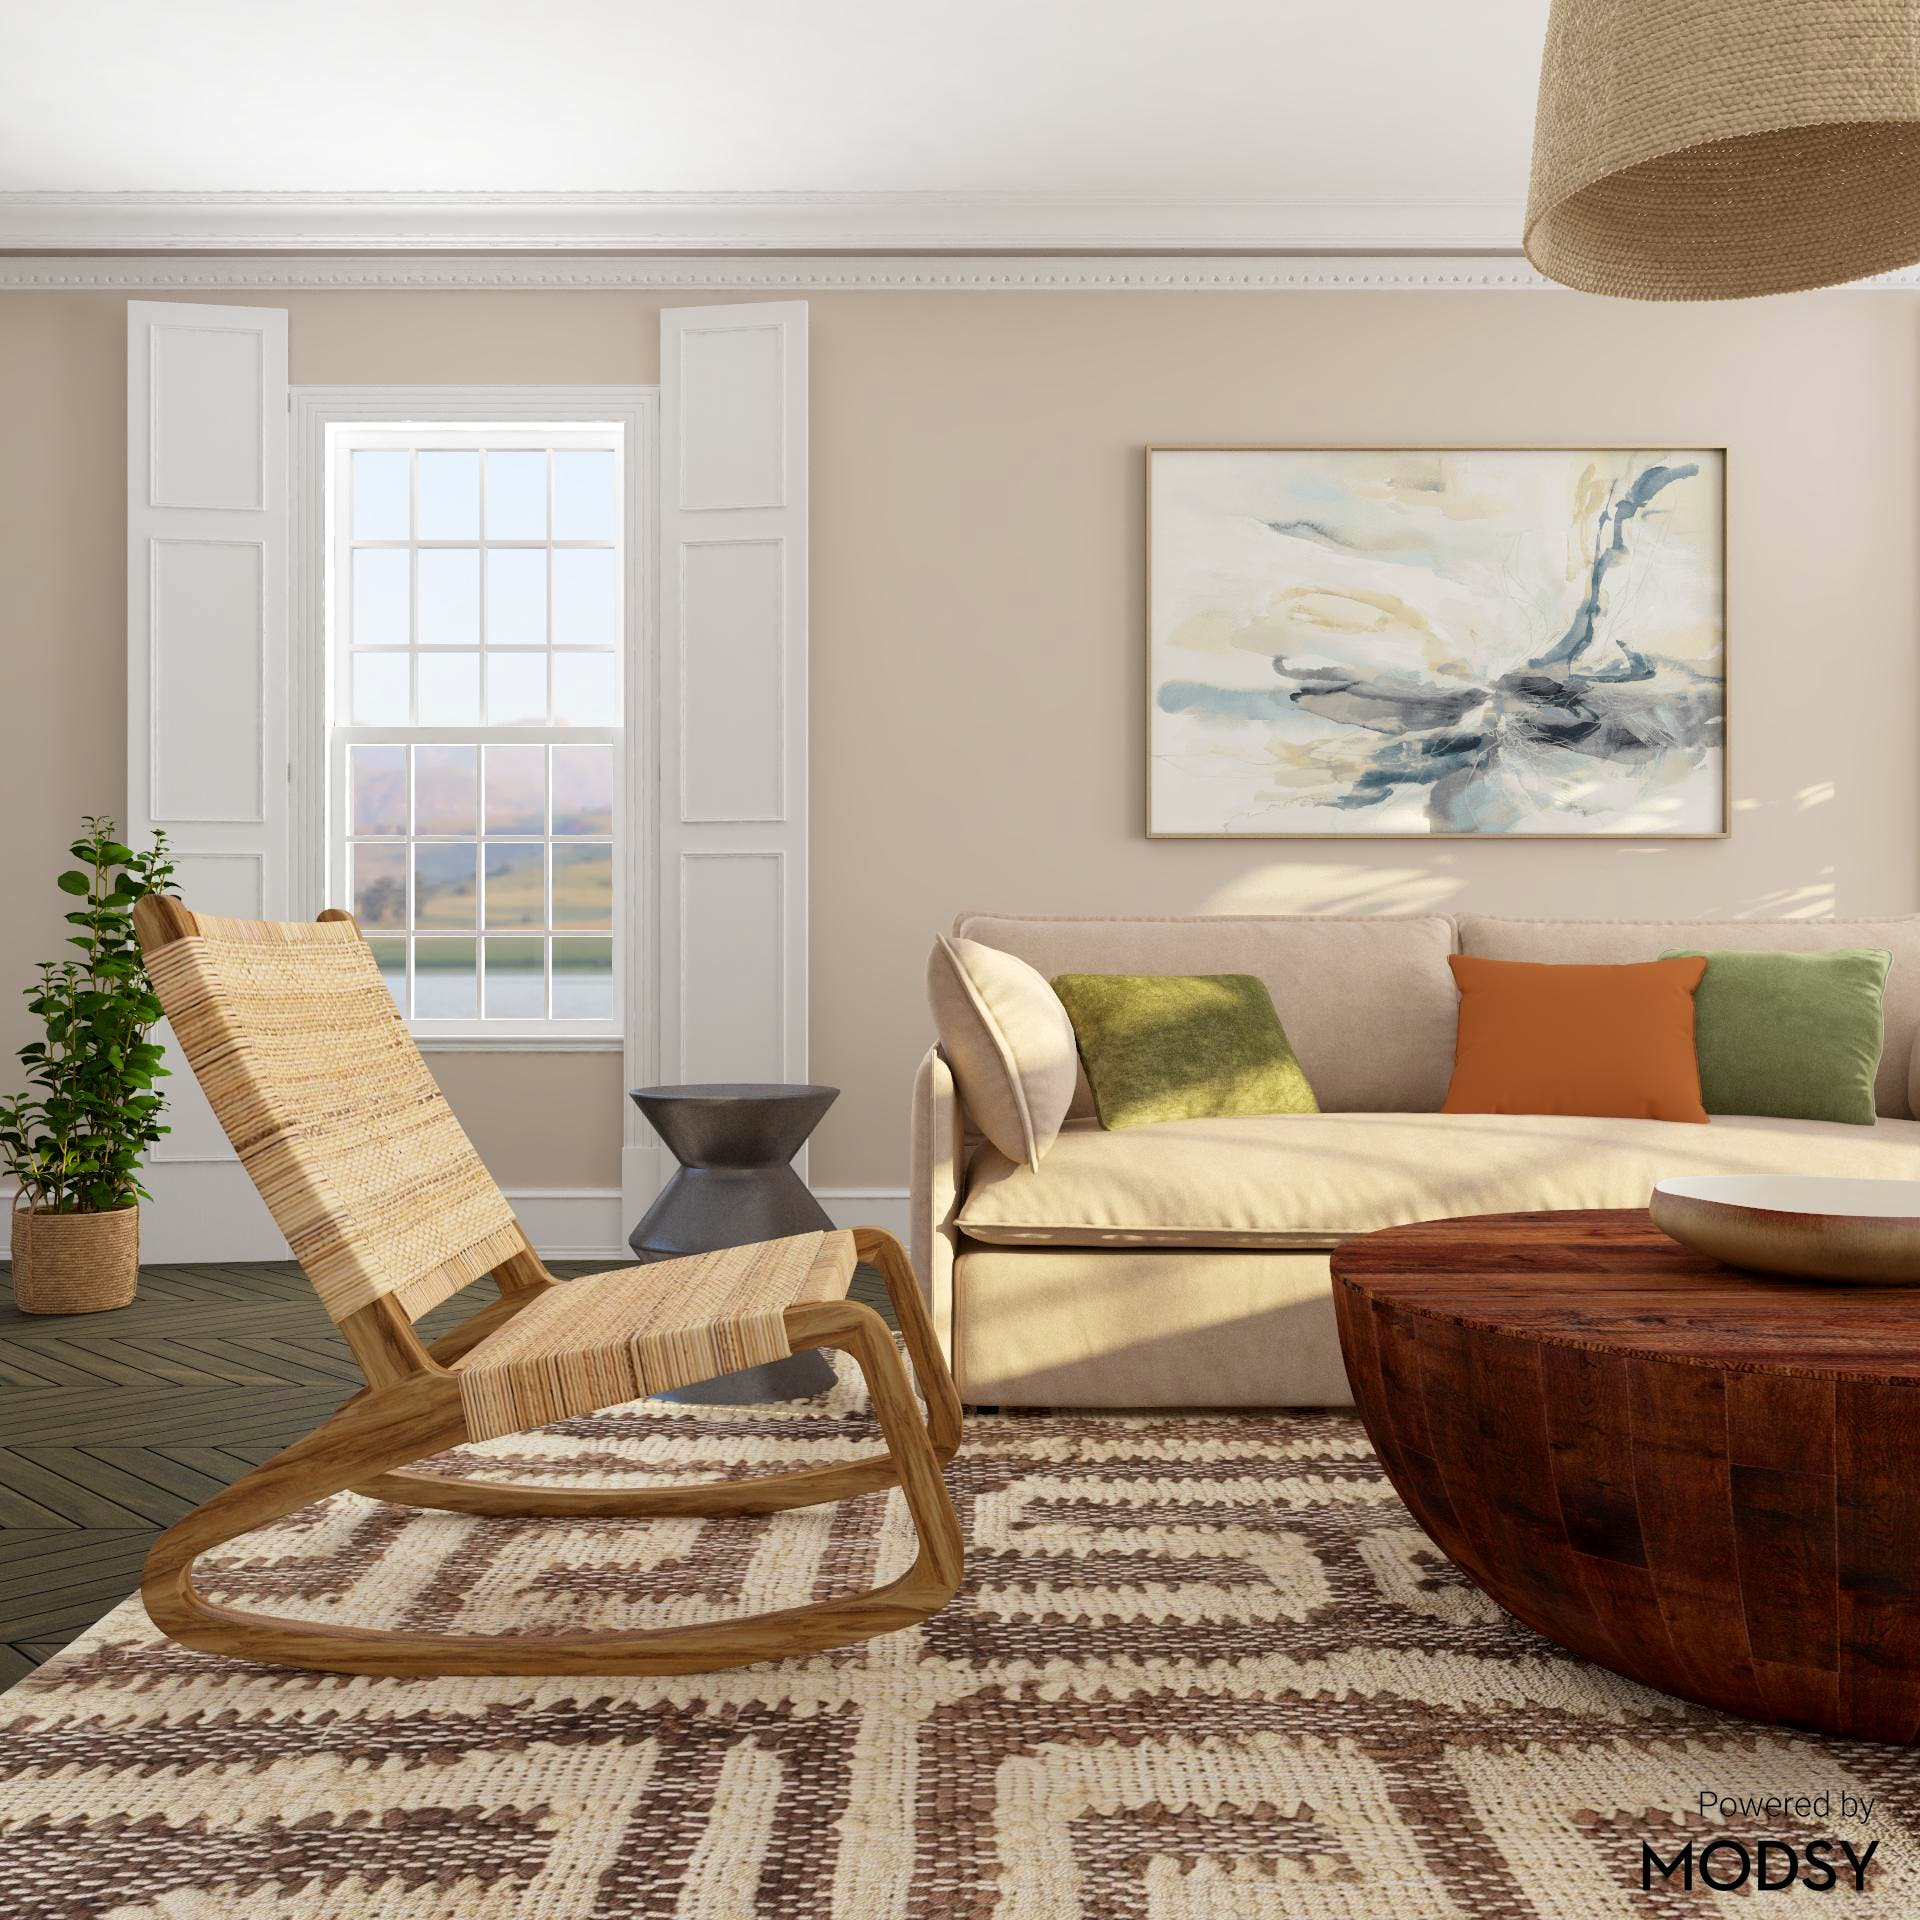 Woven Textures Abound in Contemporary Living Room Space